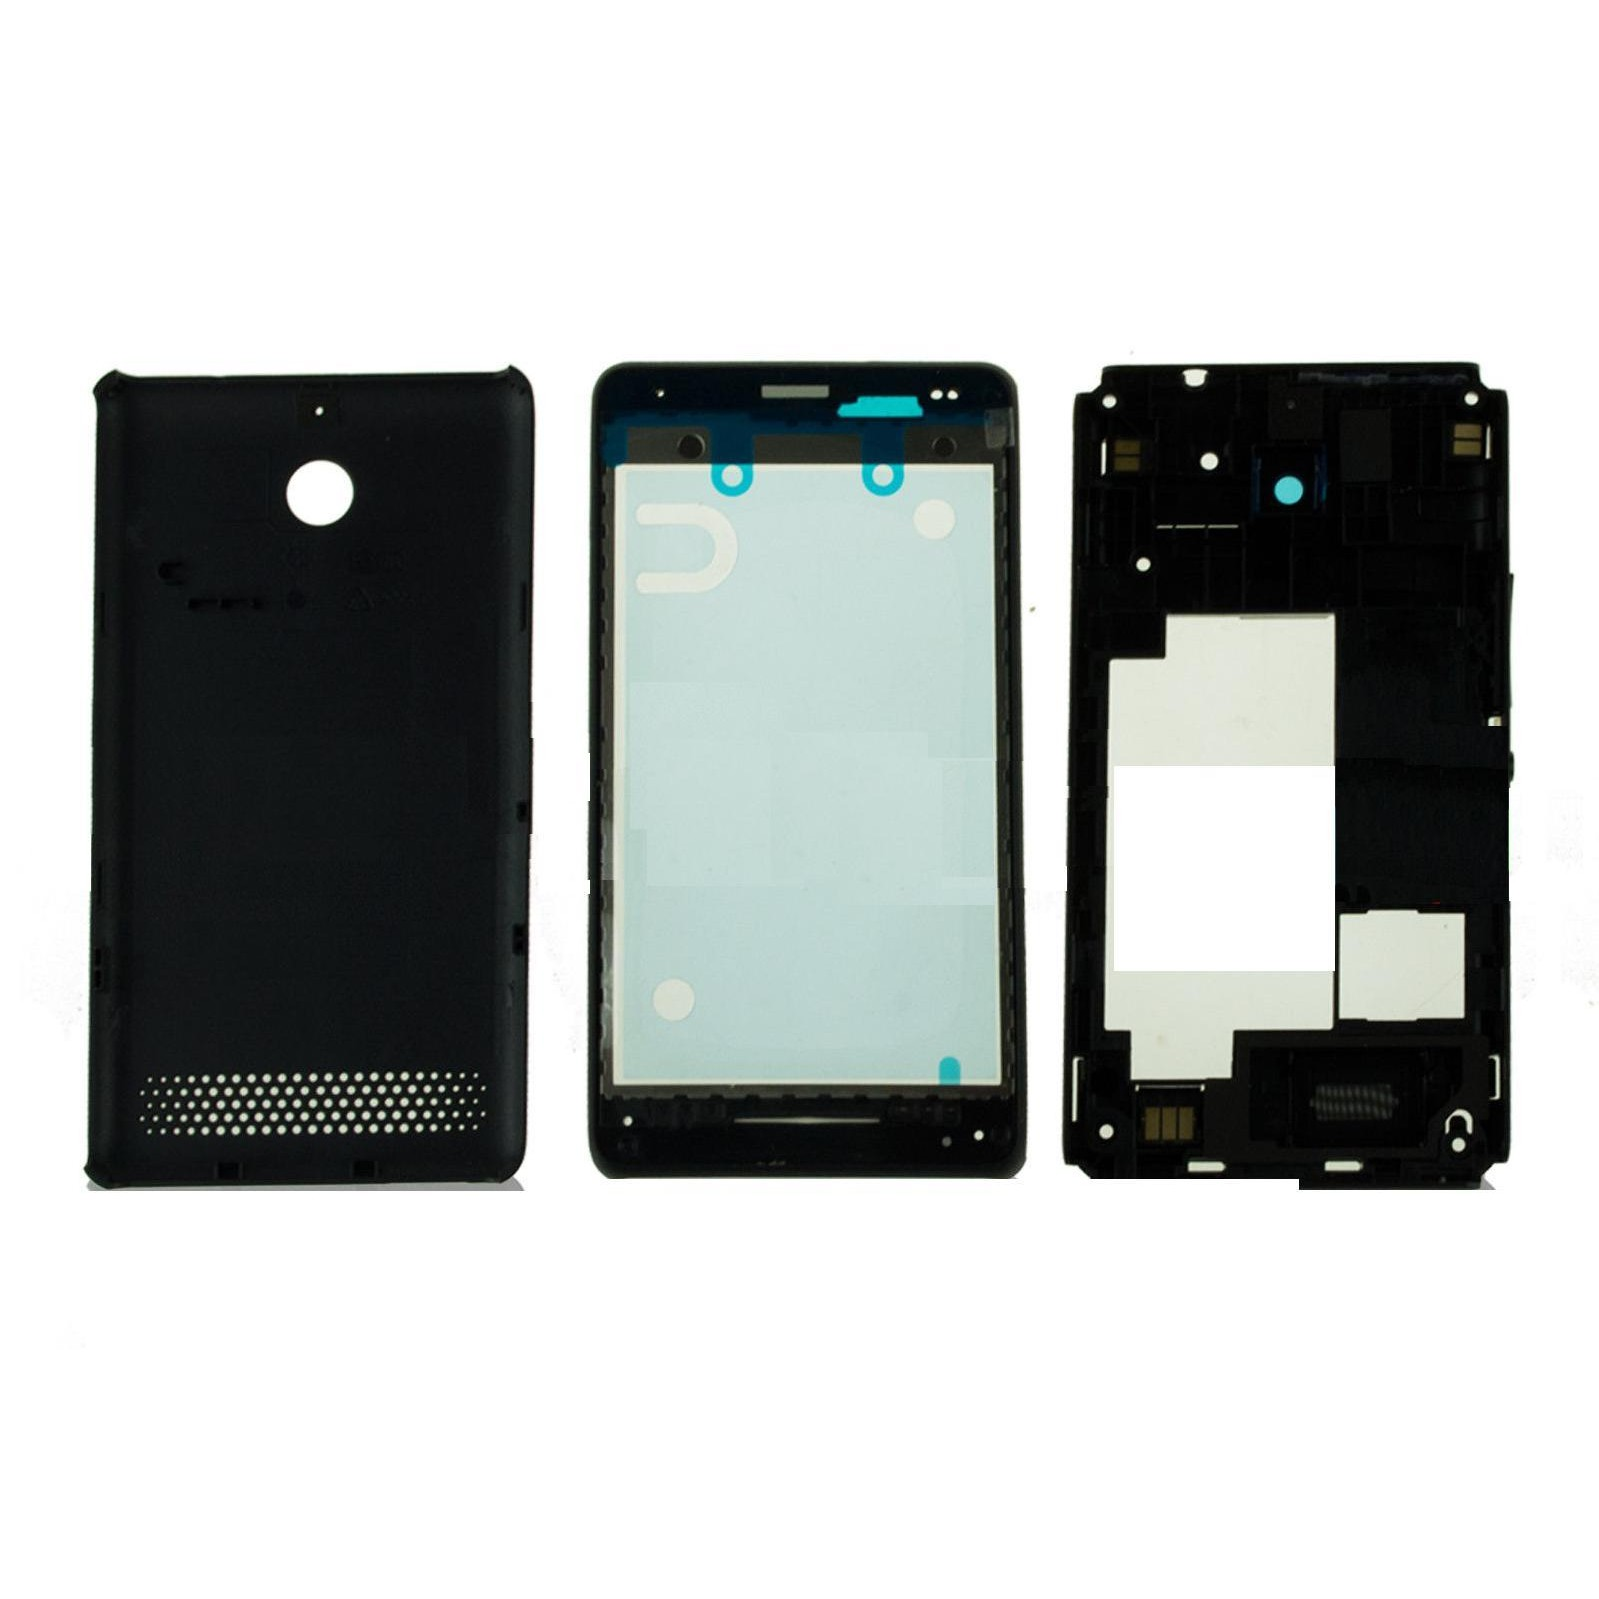 buy online fb2f2 085e0 Full Body Housing for Sony Xperia E1 dual - Black